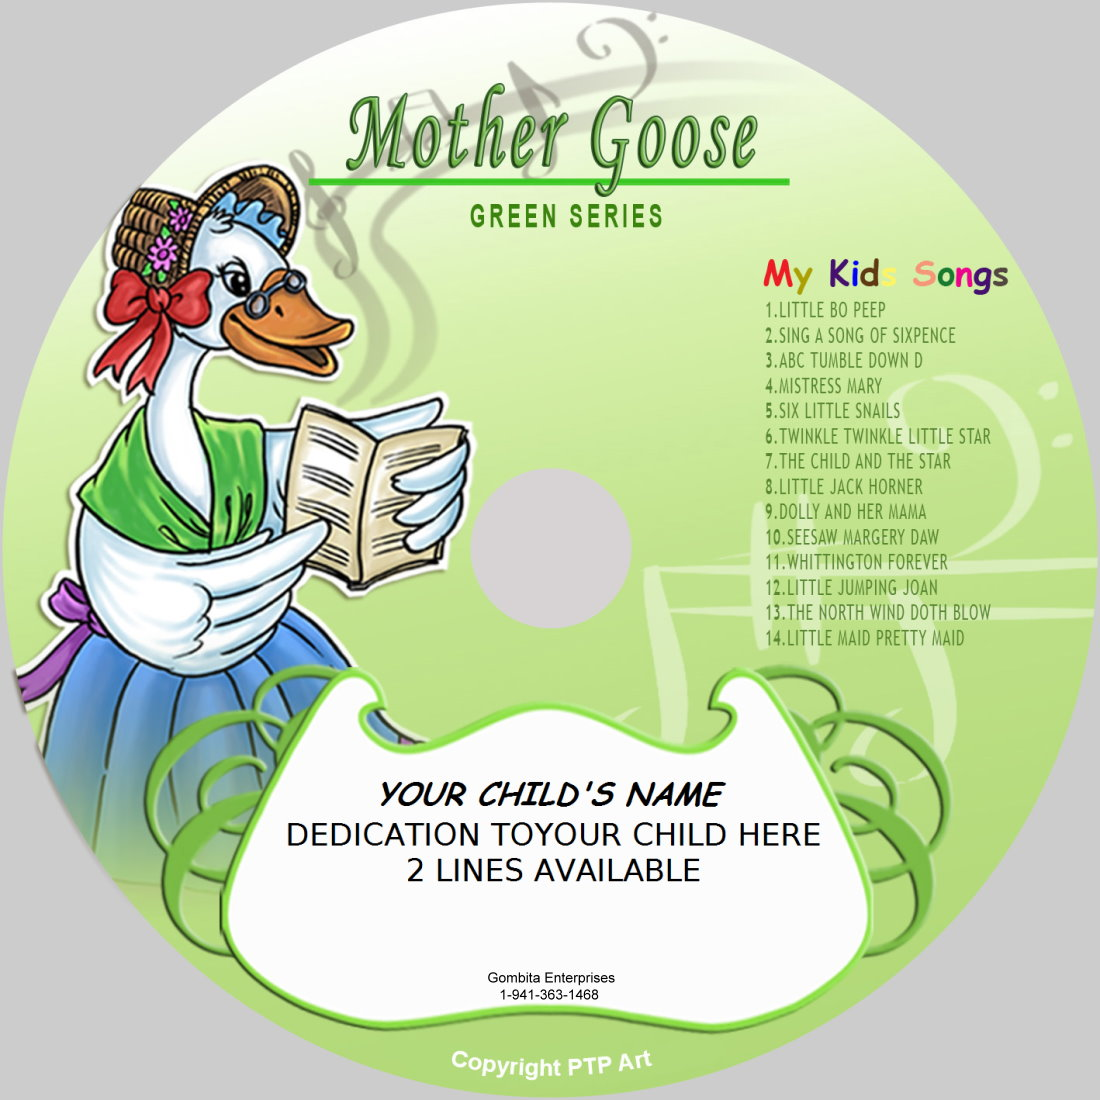 Mother Goose (Green) - My Kids Songs - CD Disk & MP3 Download